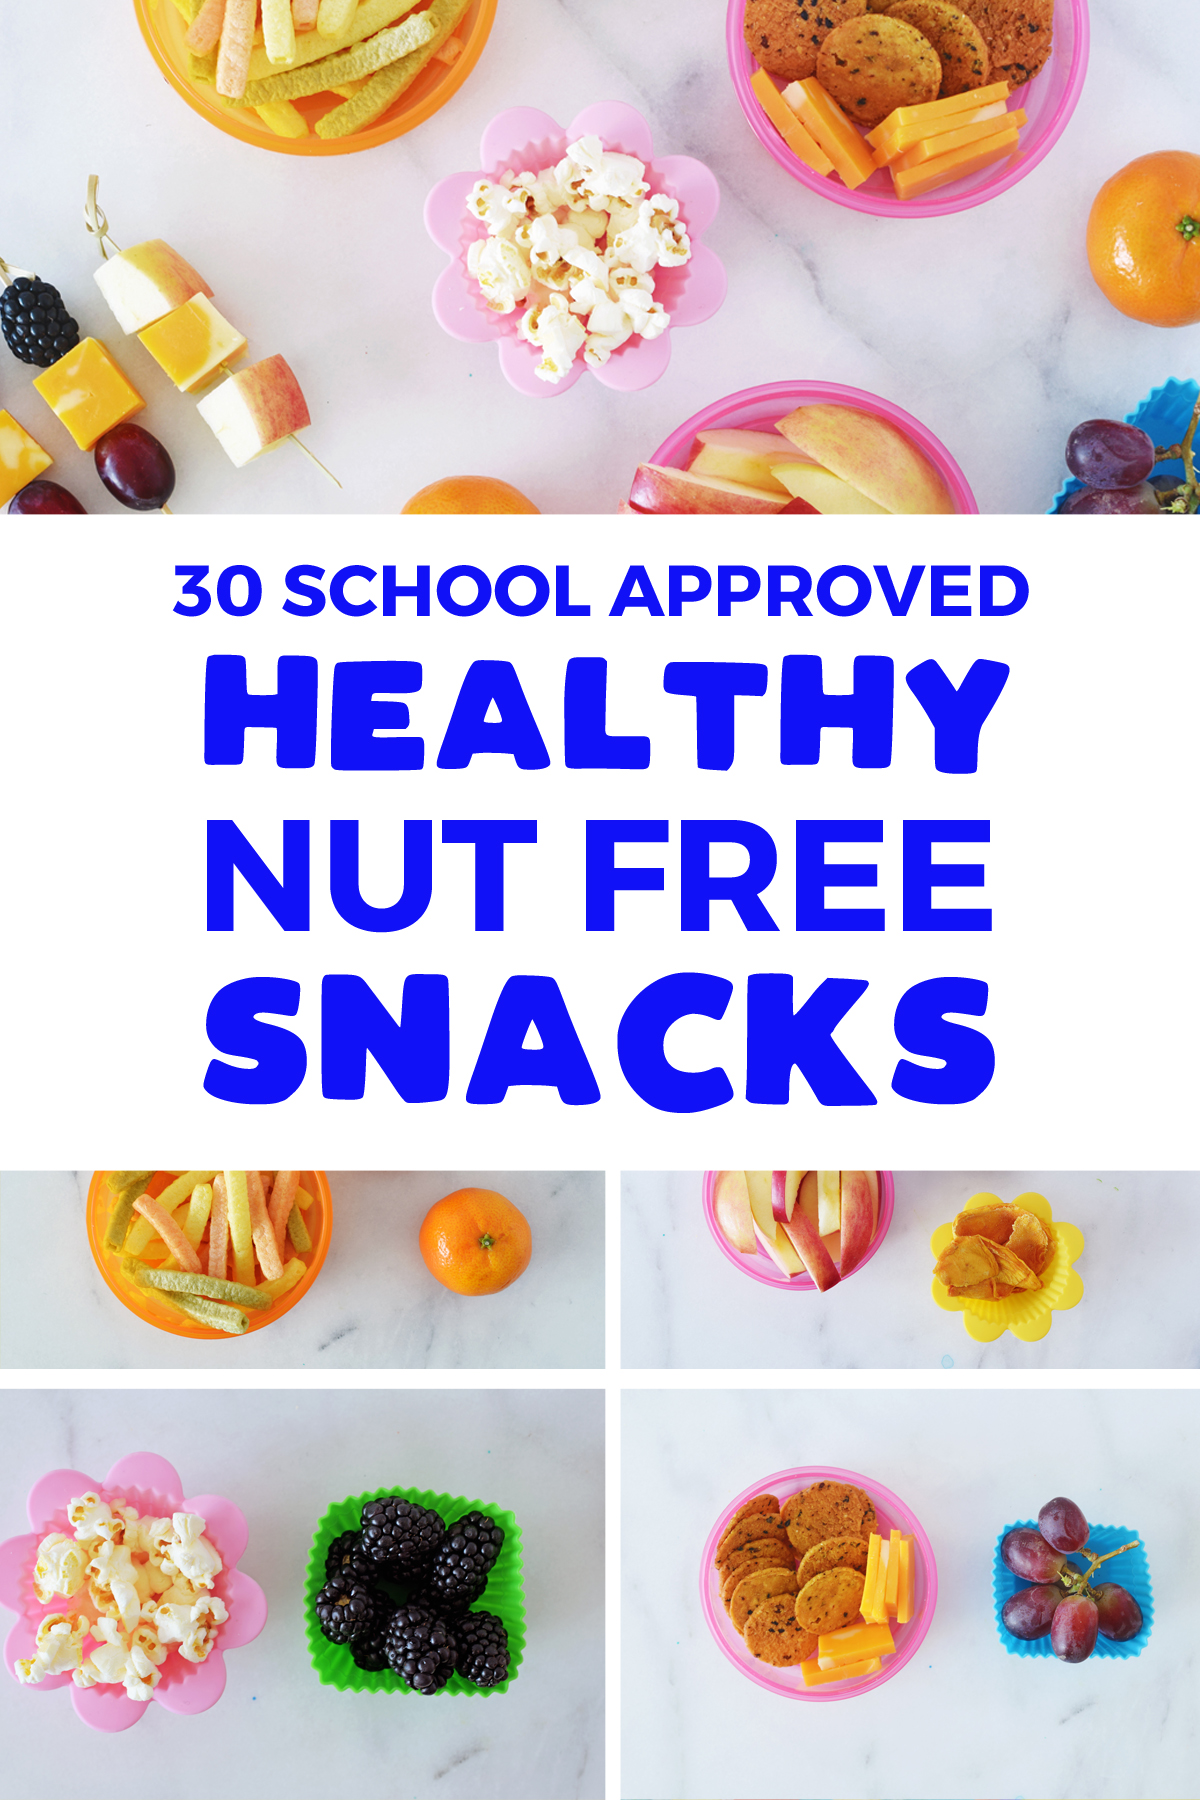 30 school approved healthy nut free snacks for kids | For kids | for school | healthy | food allergies | vegan | store bought | to buy | for adults | protein | homemade | packaged  | for toddlers | prepackaged | for preschool | sunflower seeds | energy bites | #nutfree #school #snack #toddler #preschool #kindergarten #kids #kidfriendly